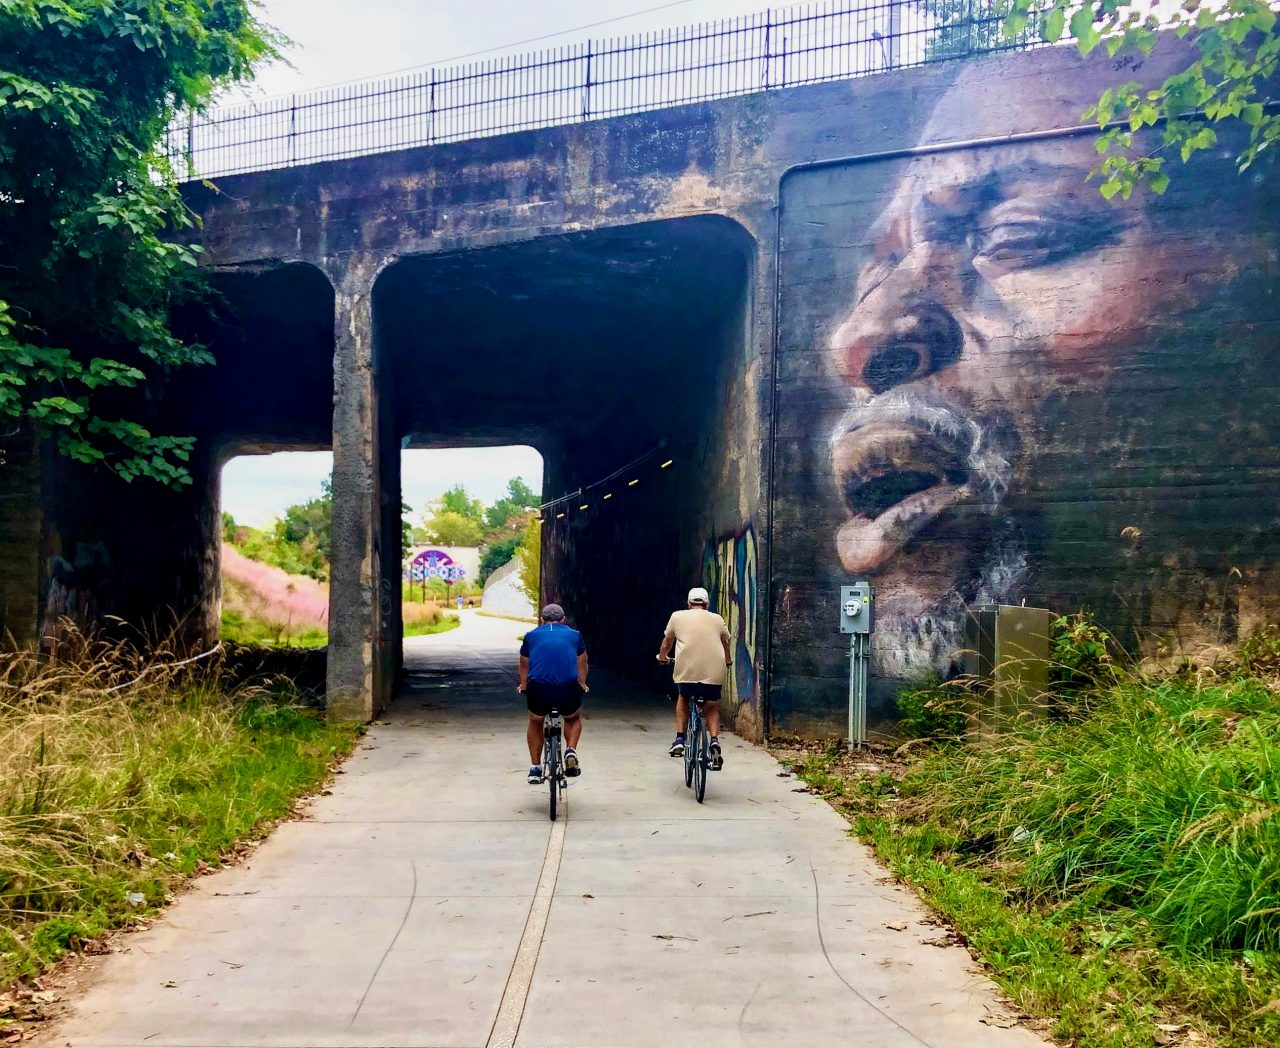 Bikers ride near mural underpass